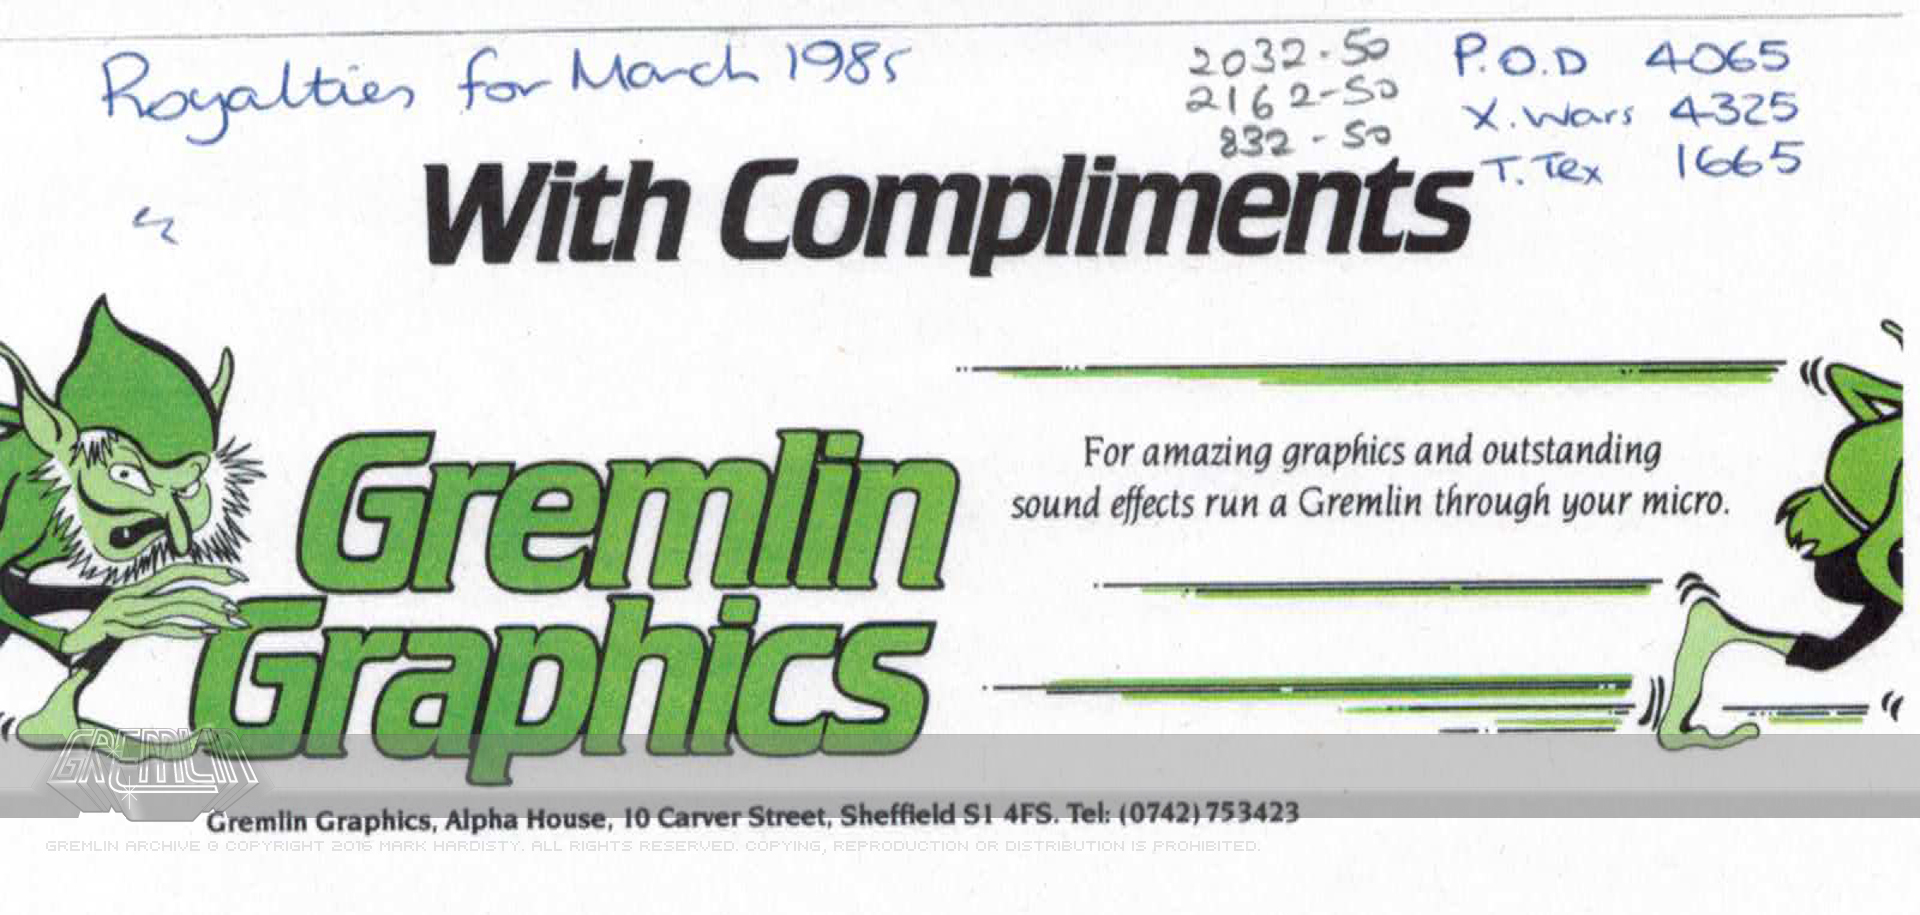 Compliment Slip / Royalty Notes